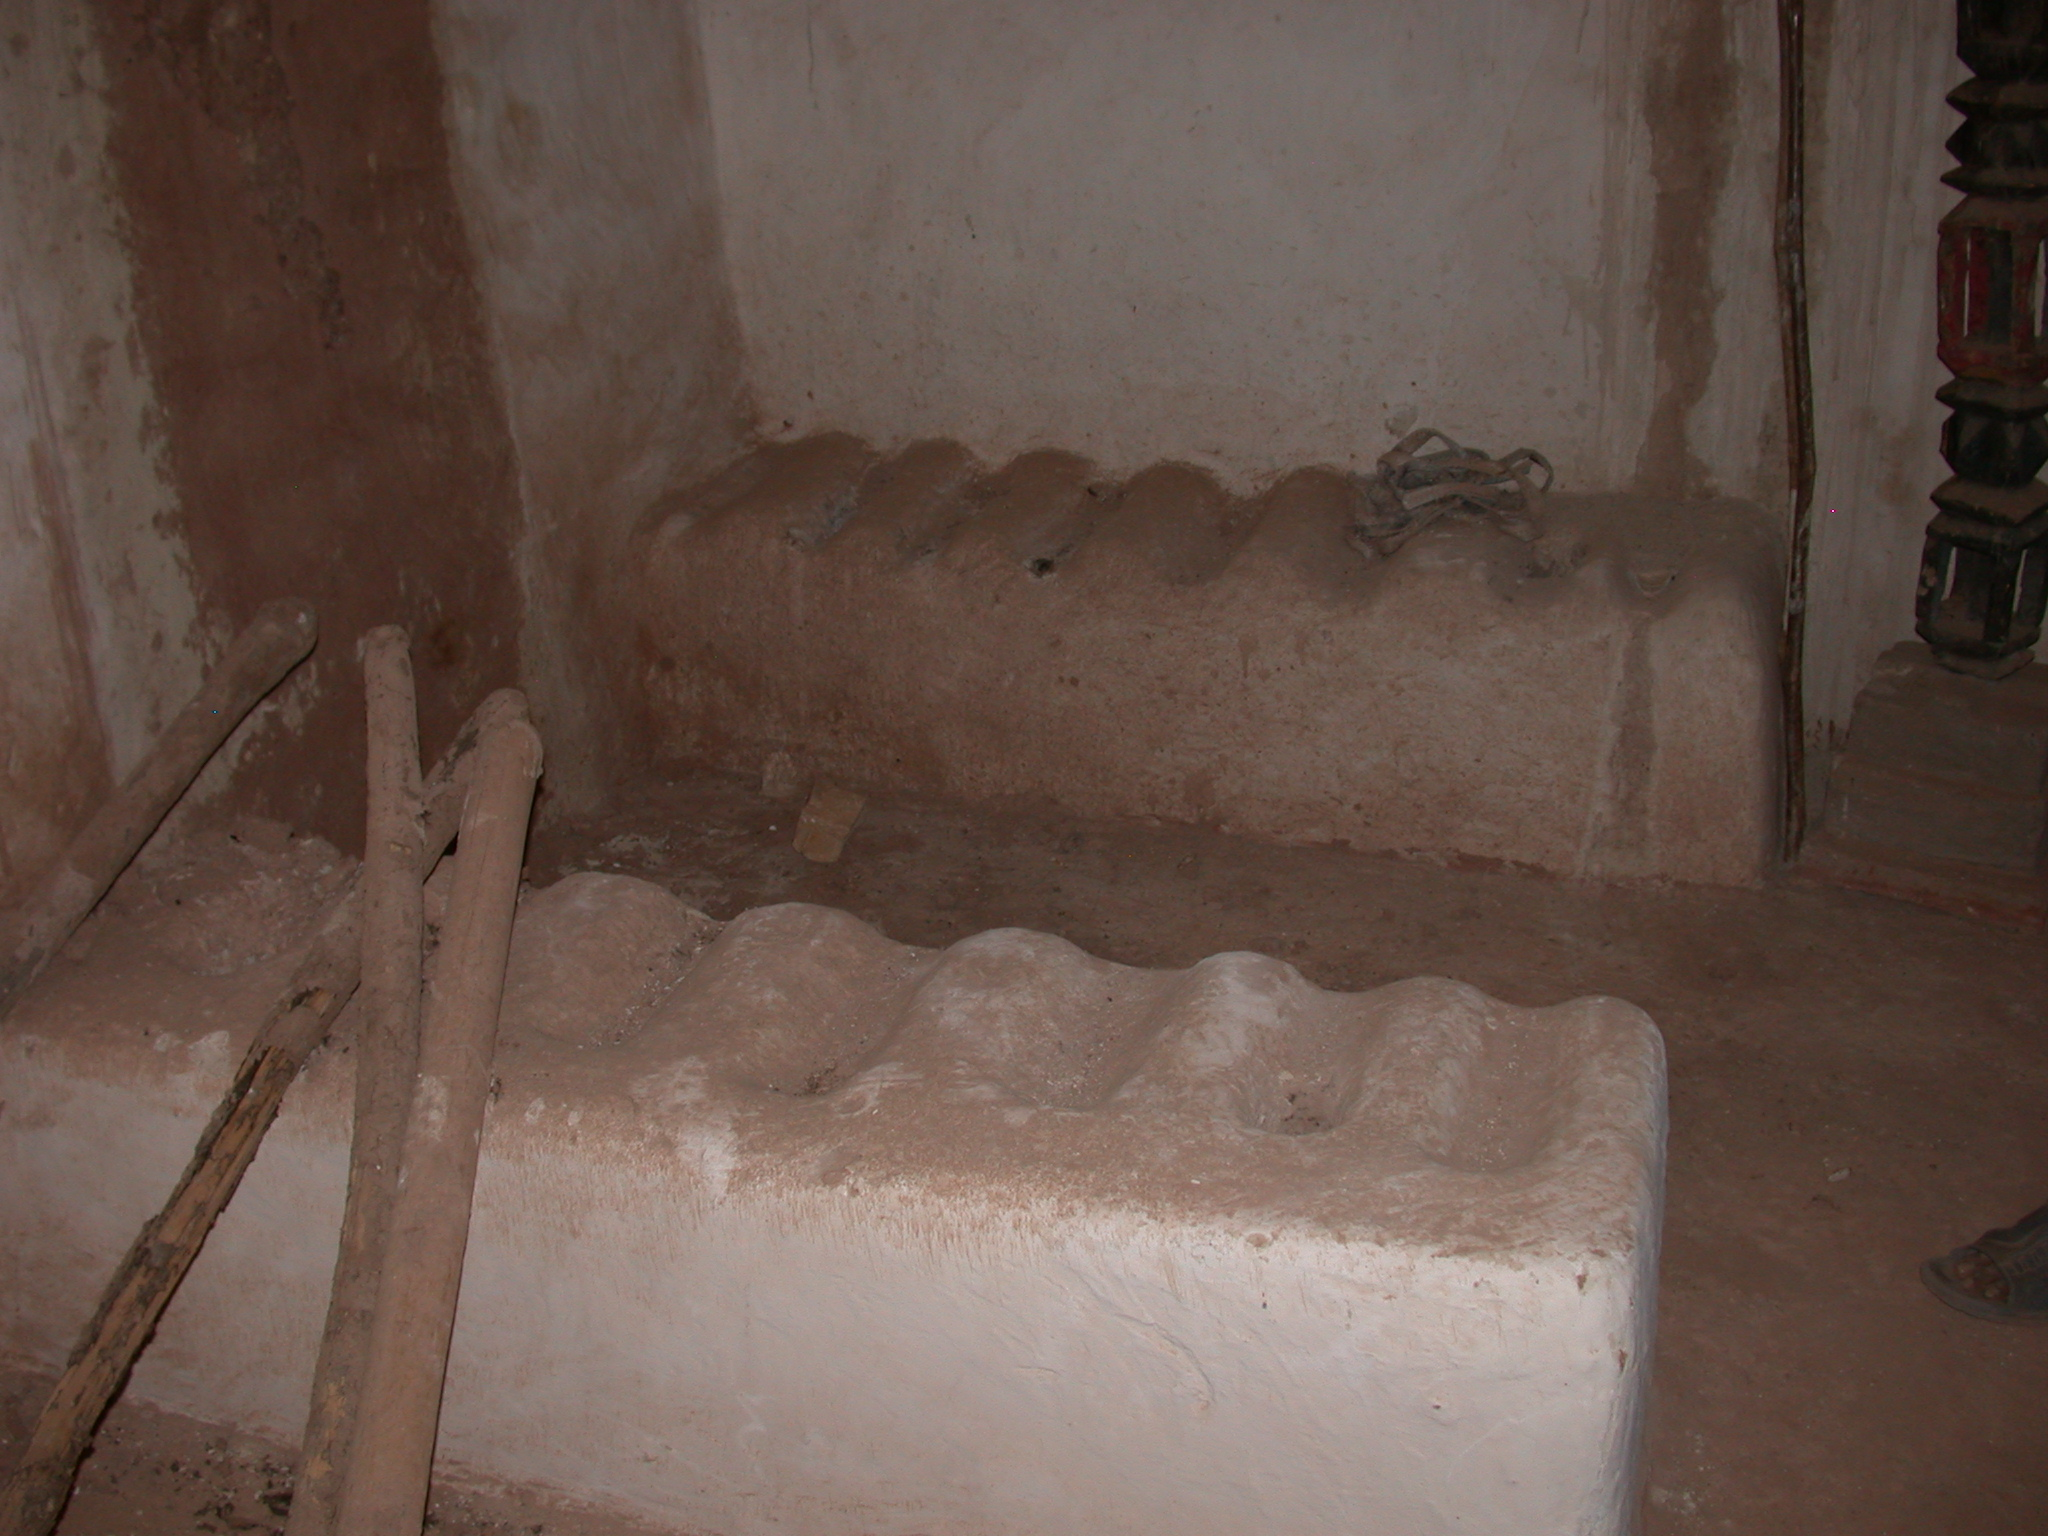 Traditional Bed Platform at Museum in Ancient City of Oulata, Mauritania